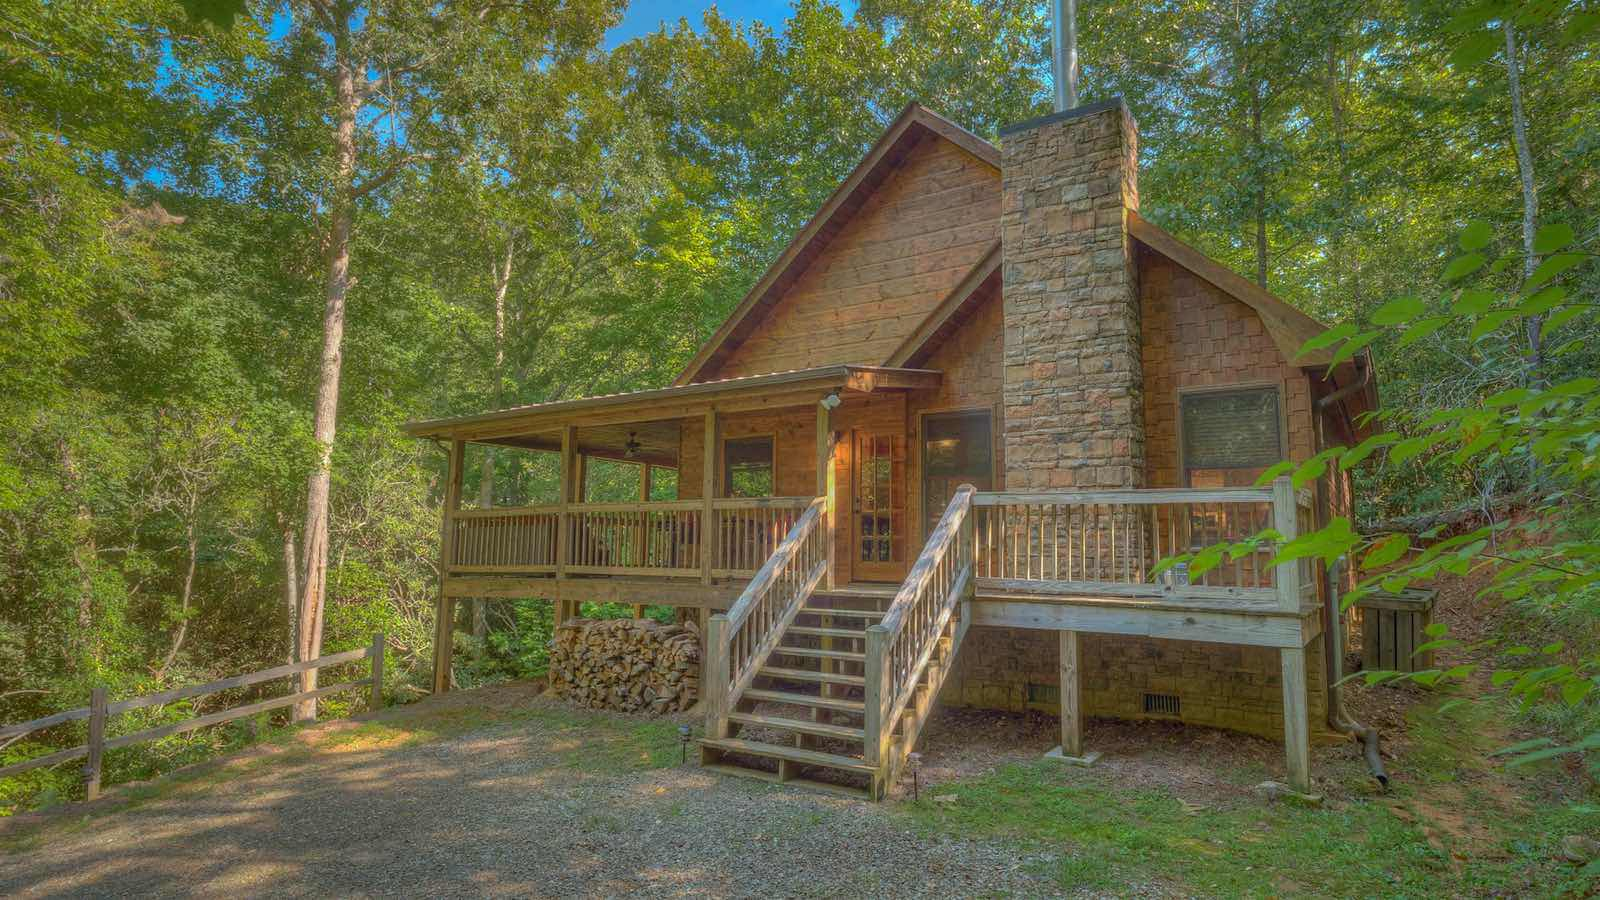 vacation ga friendly georgia cabin cheap in the near rent premier cabins pet on downtown rentals helen for river